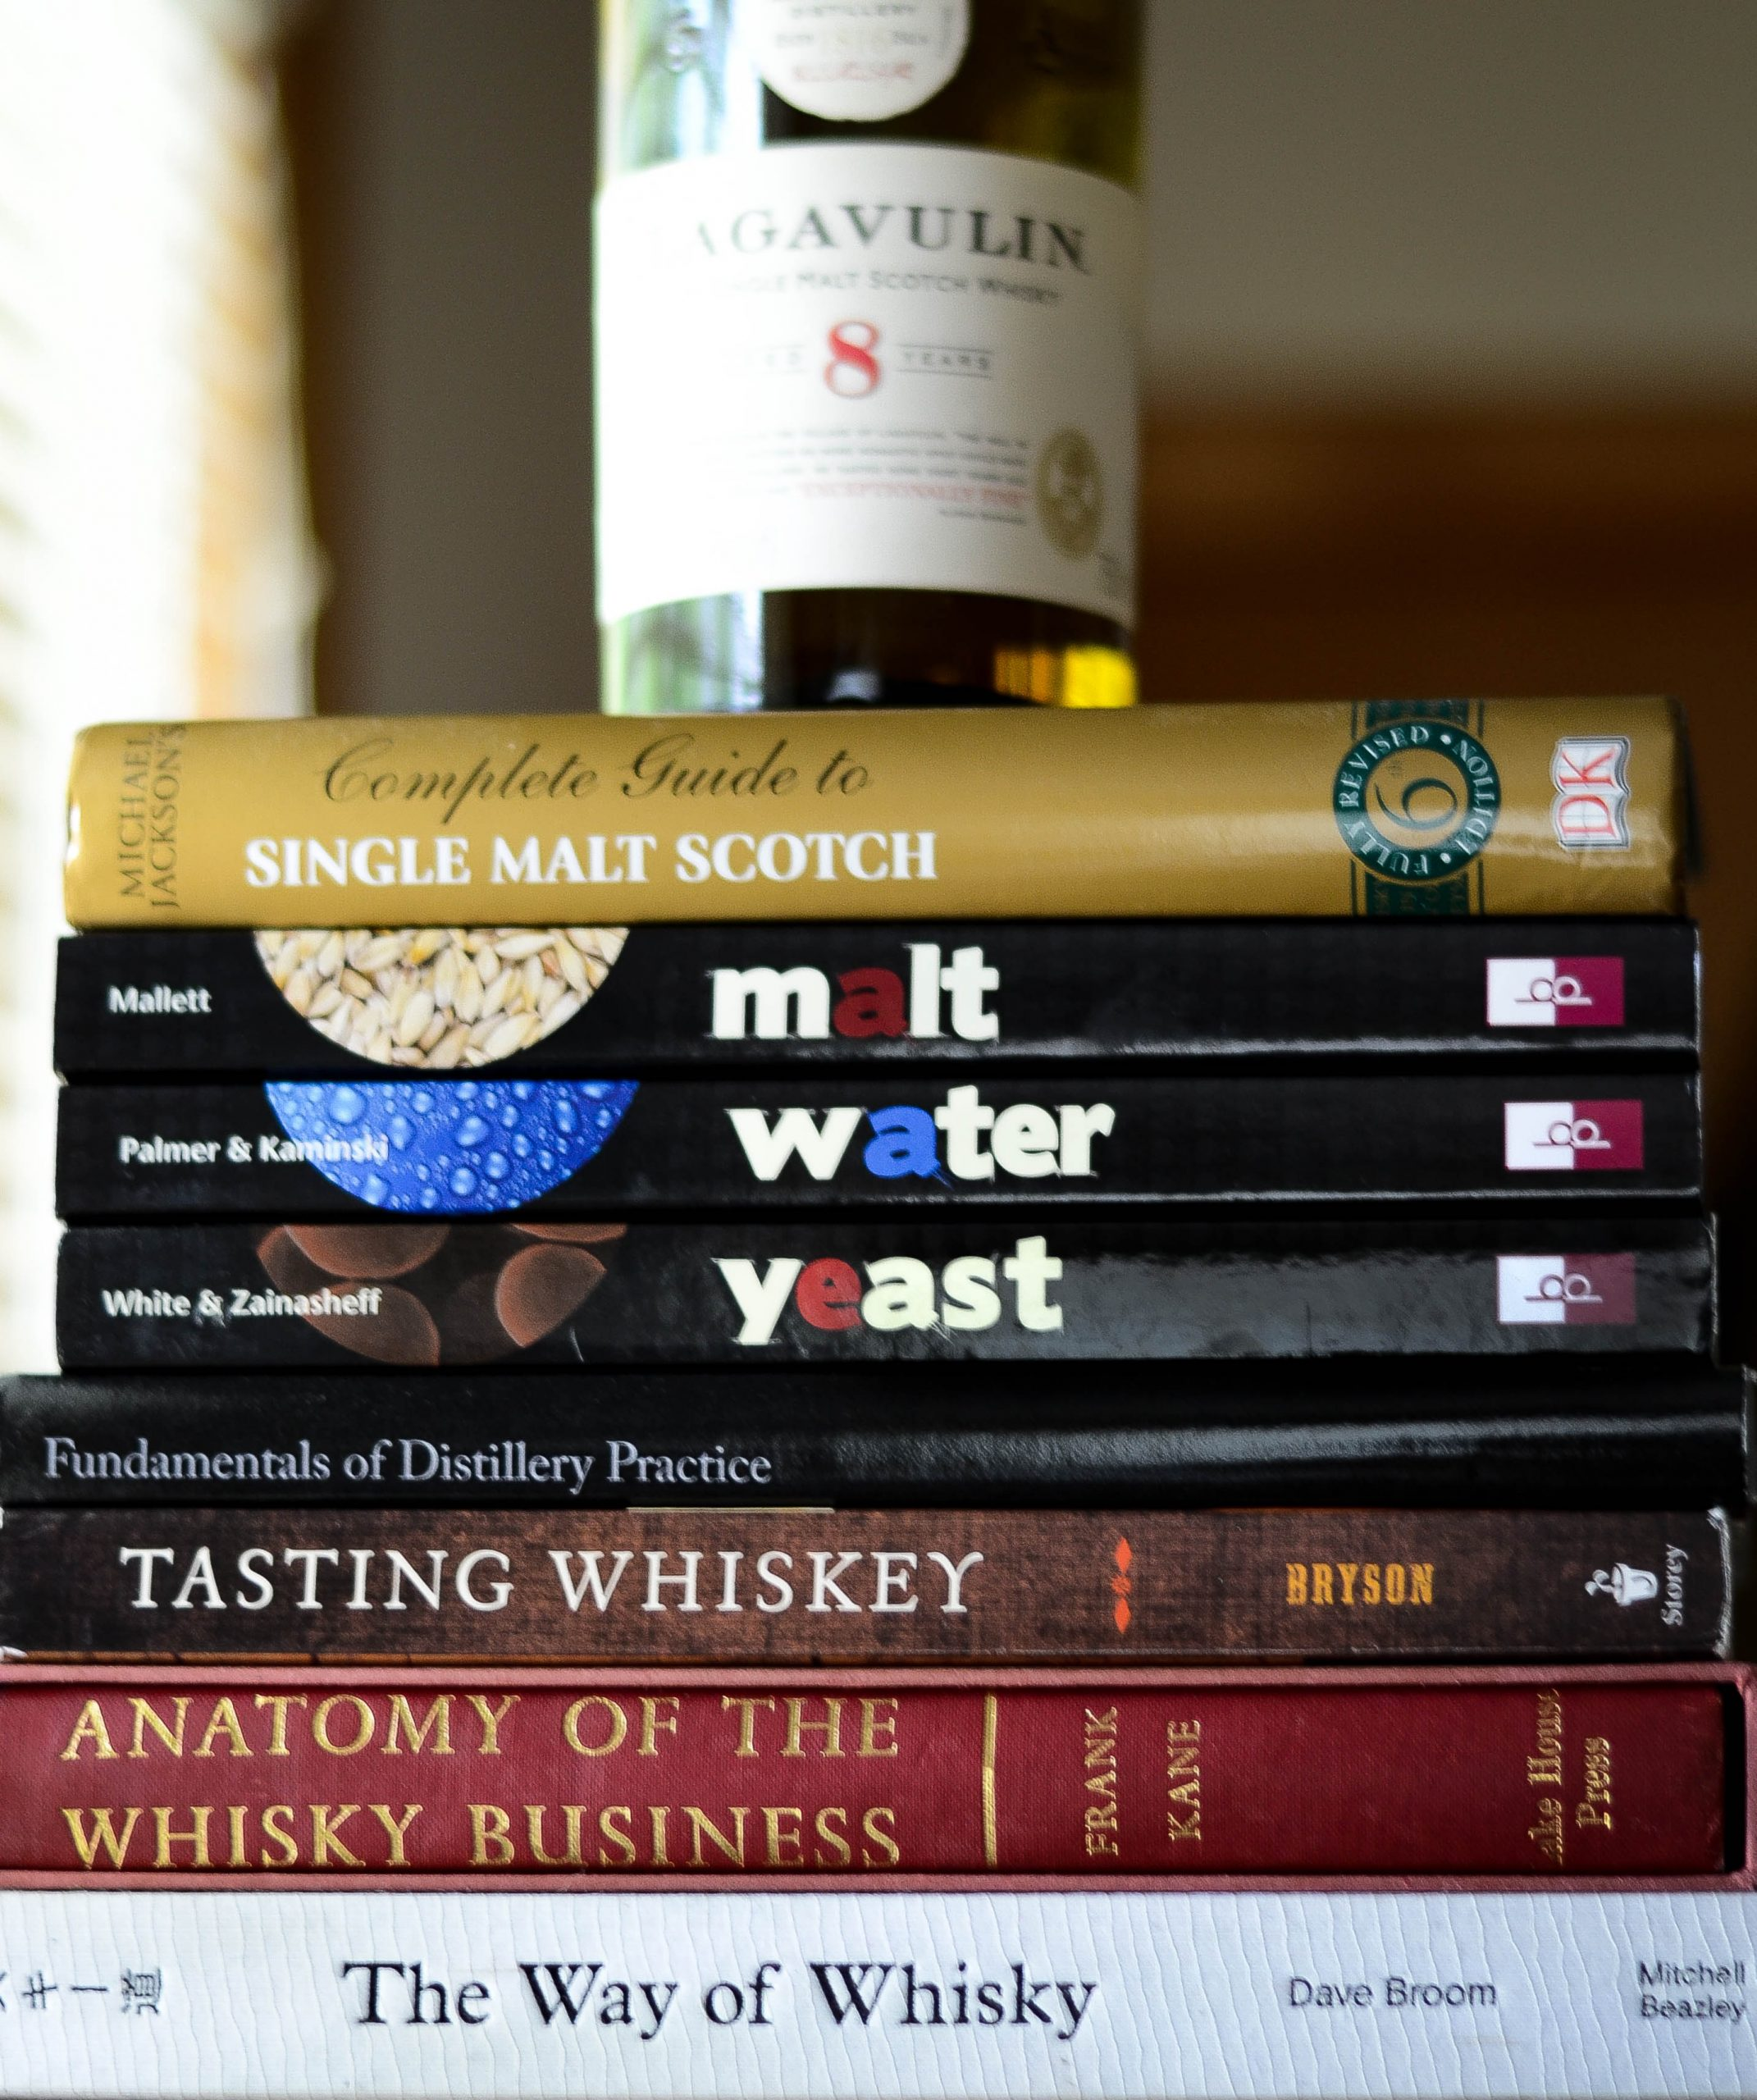 Stack of books about whiskey making with whiskey bottle on top